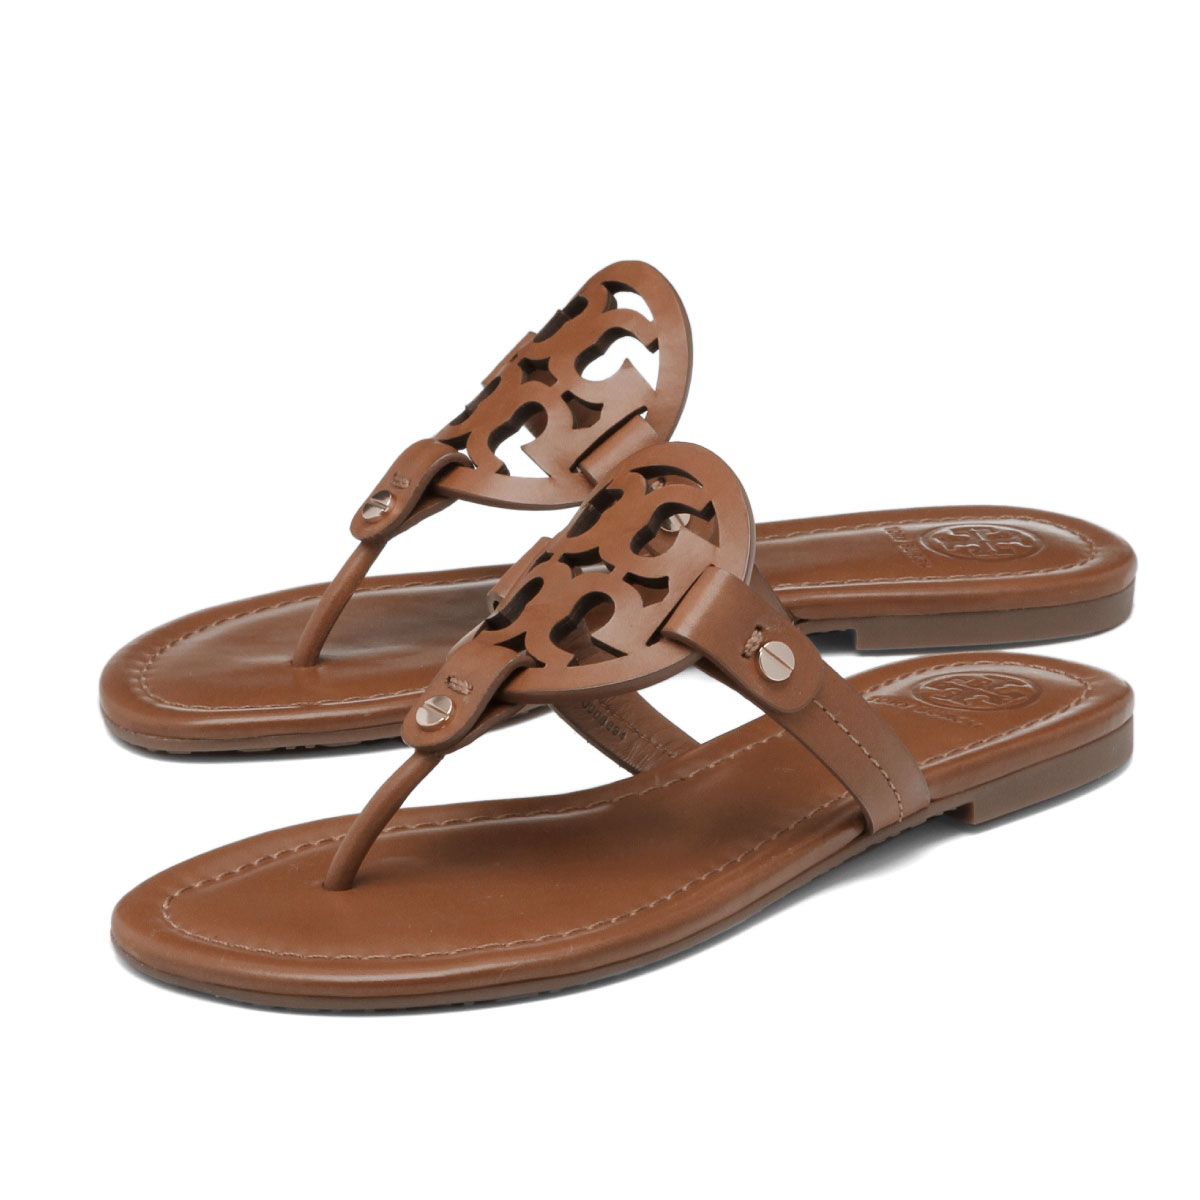 90b178273 Tolly Birch TORY BURCH shoes Lady s 50008694 204 tong sandals MILLER mirror  VINTAGE VACHETTA brown